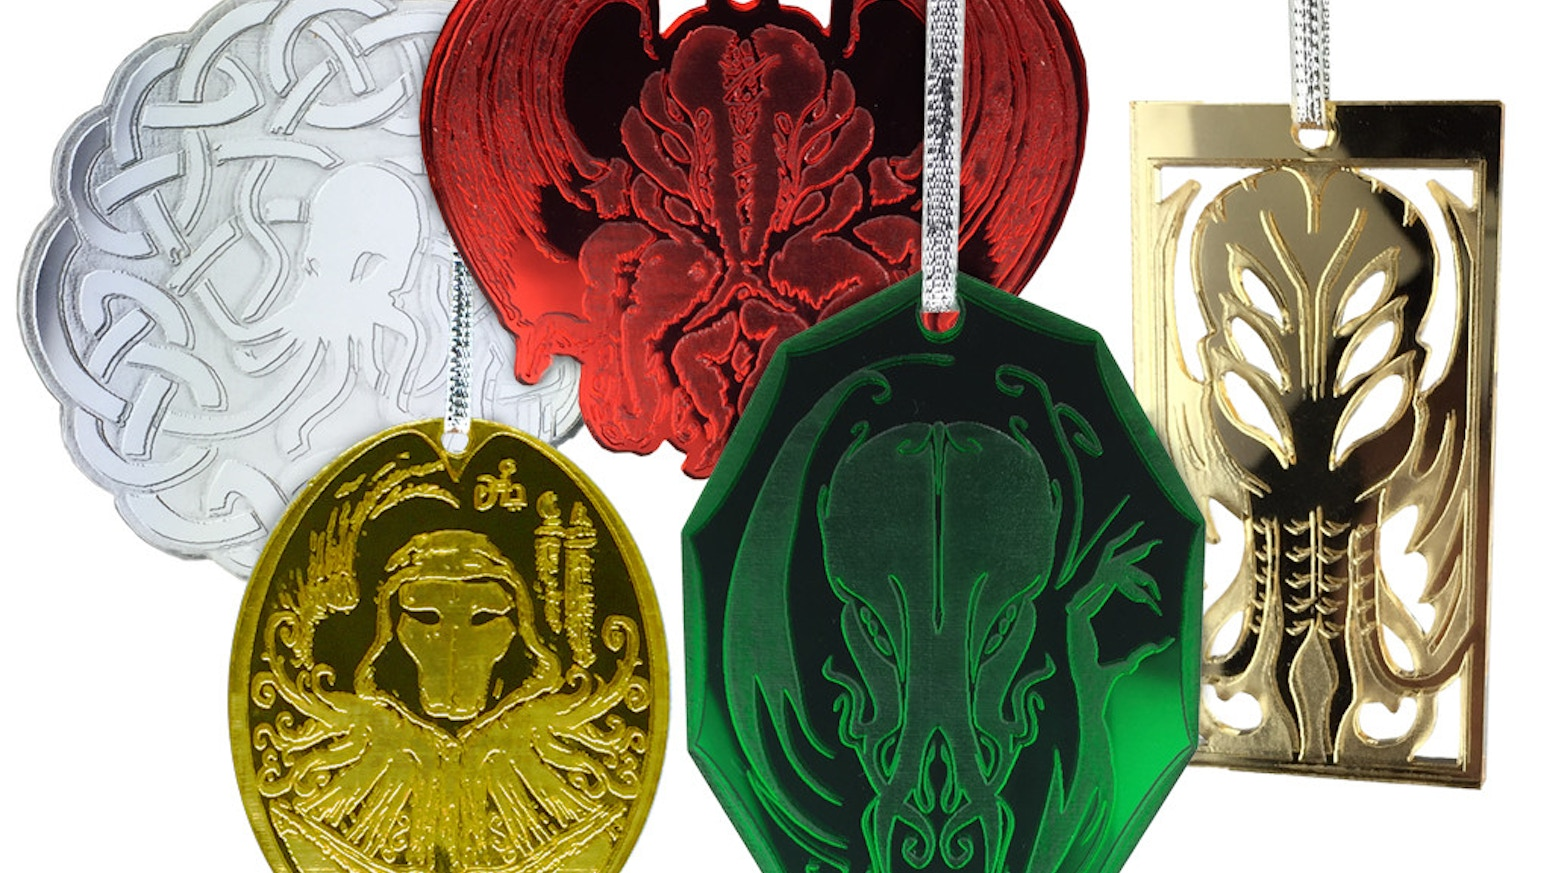 H.P. Lovecraft loved Christmas time and you will too, with Cthulhu on your tree! These classy ornaments will horror up your holiday.